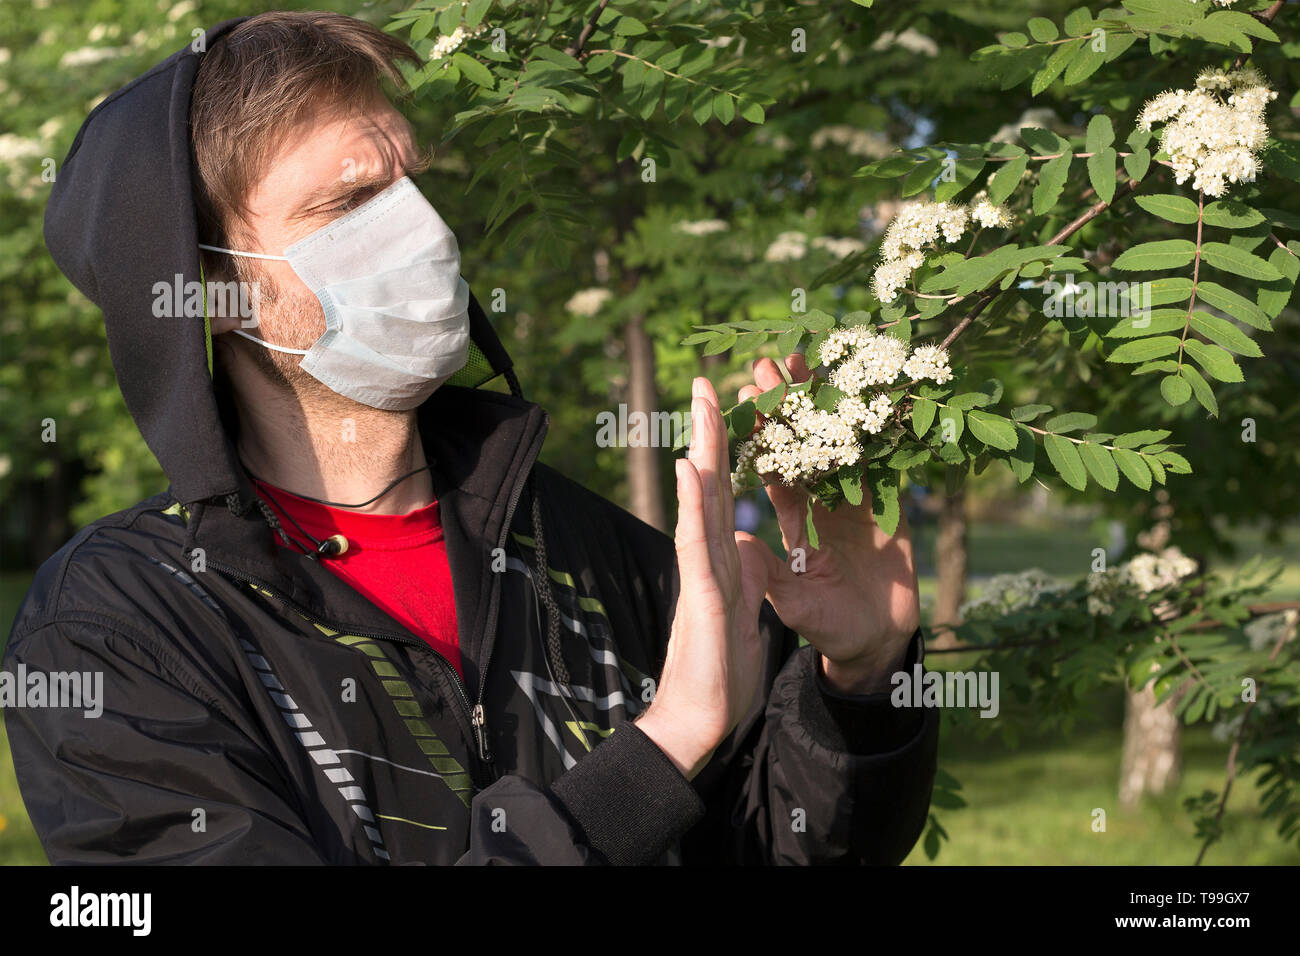 Man wearing a medical mask shows Stop gesture to a flowering branches. Seasonal allergic reaction to pollen. Stop to allergens - Stock Image